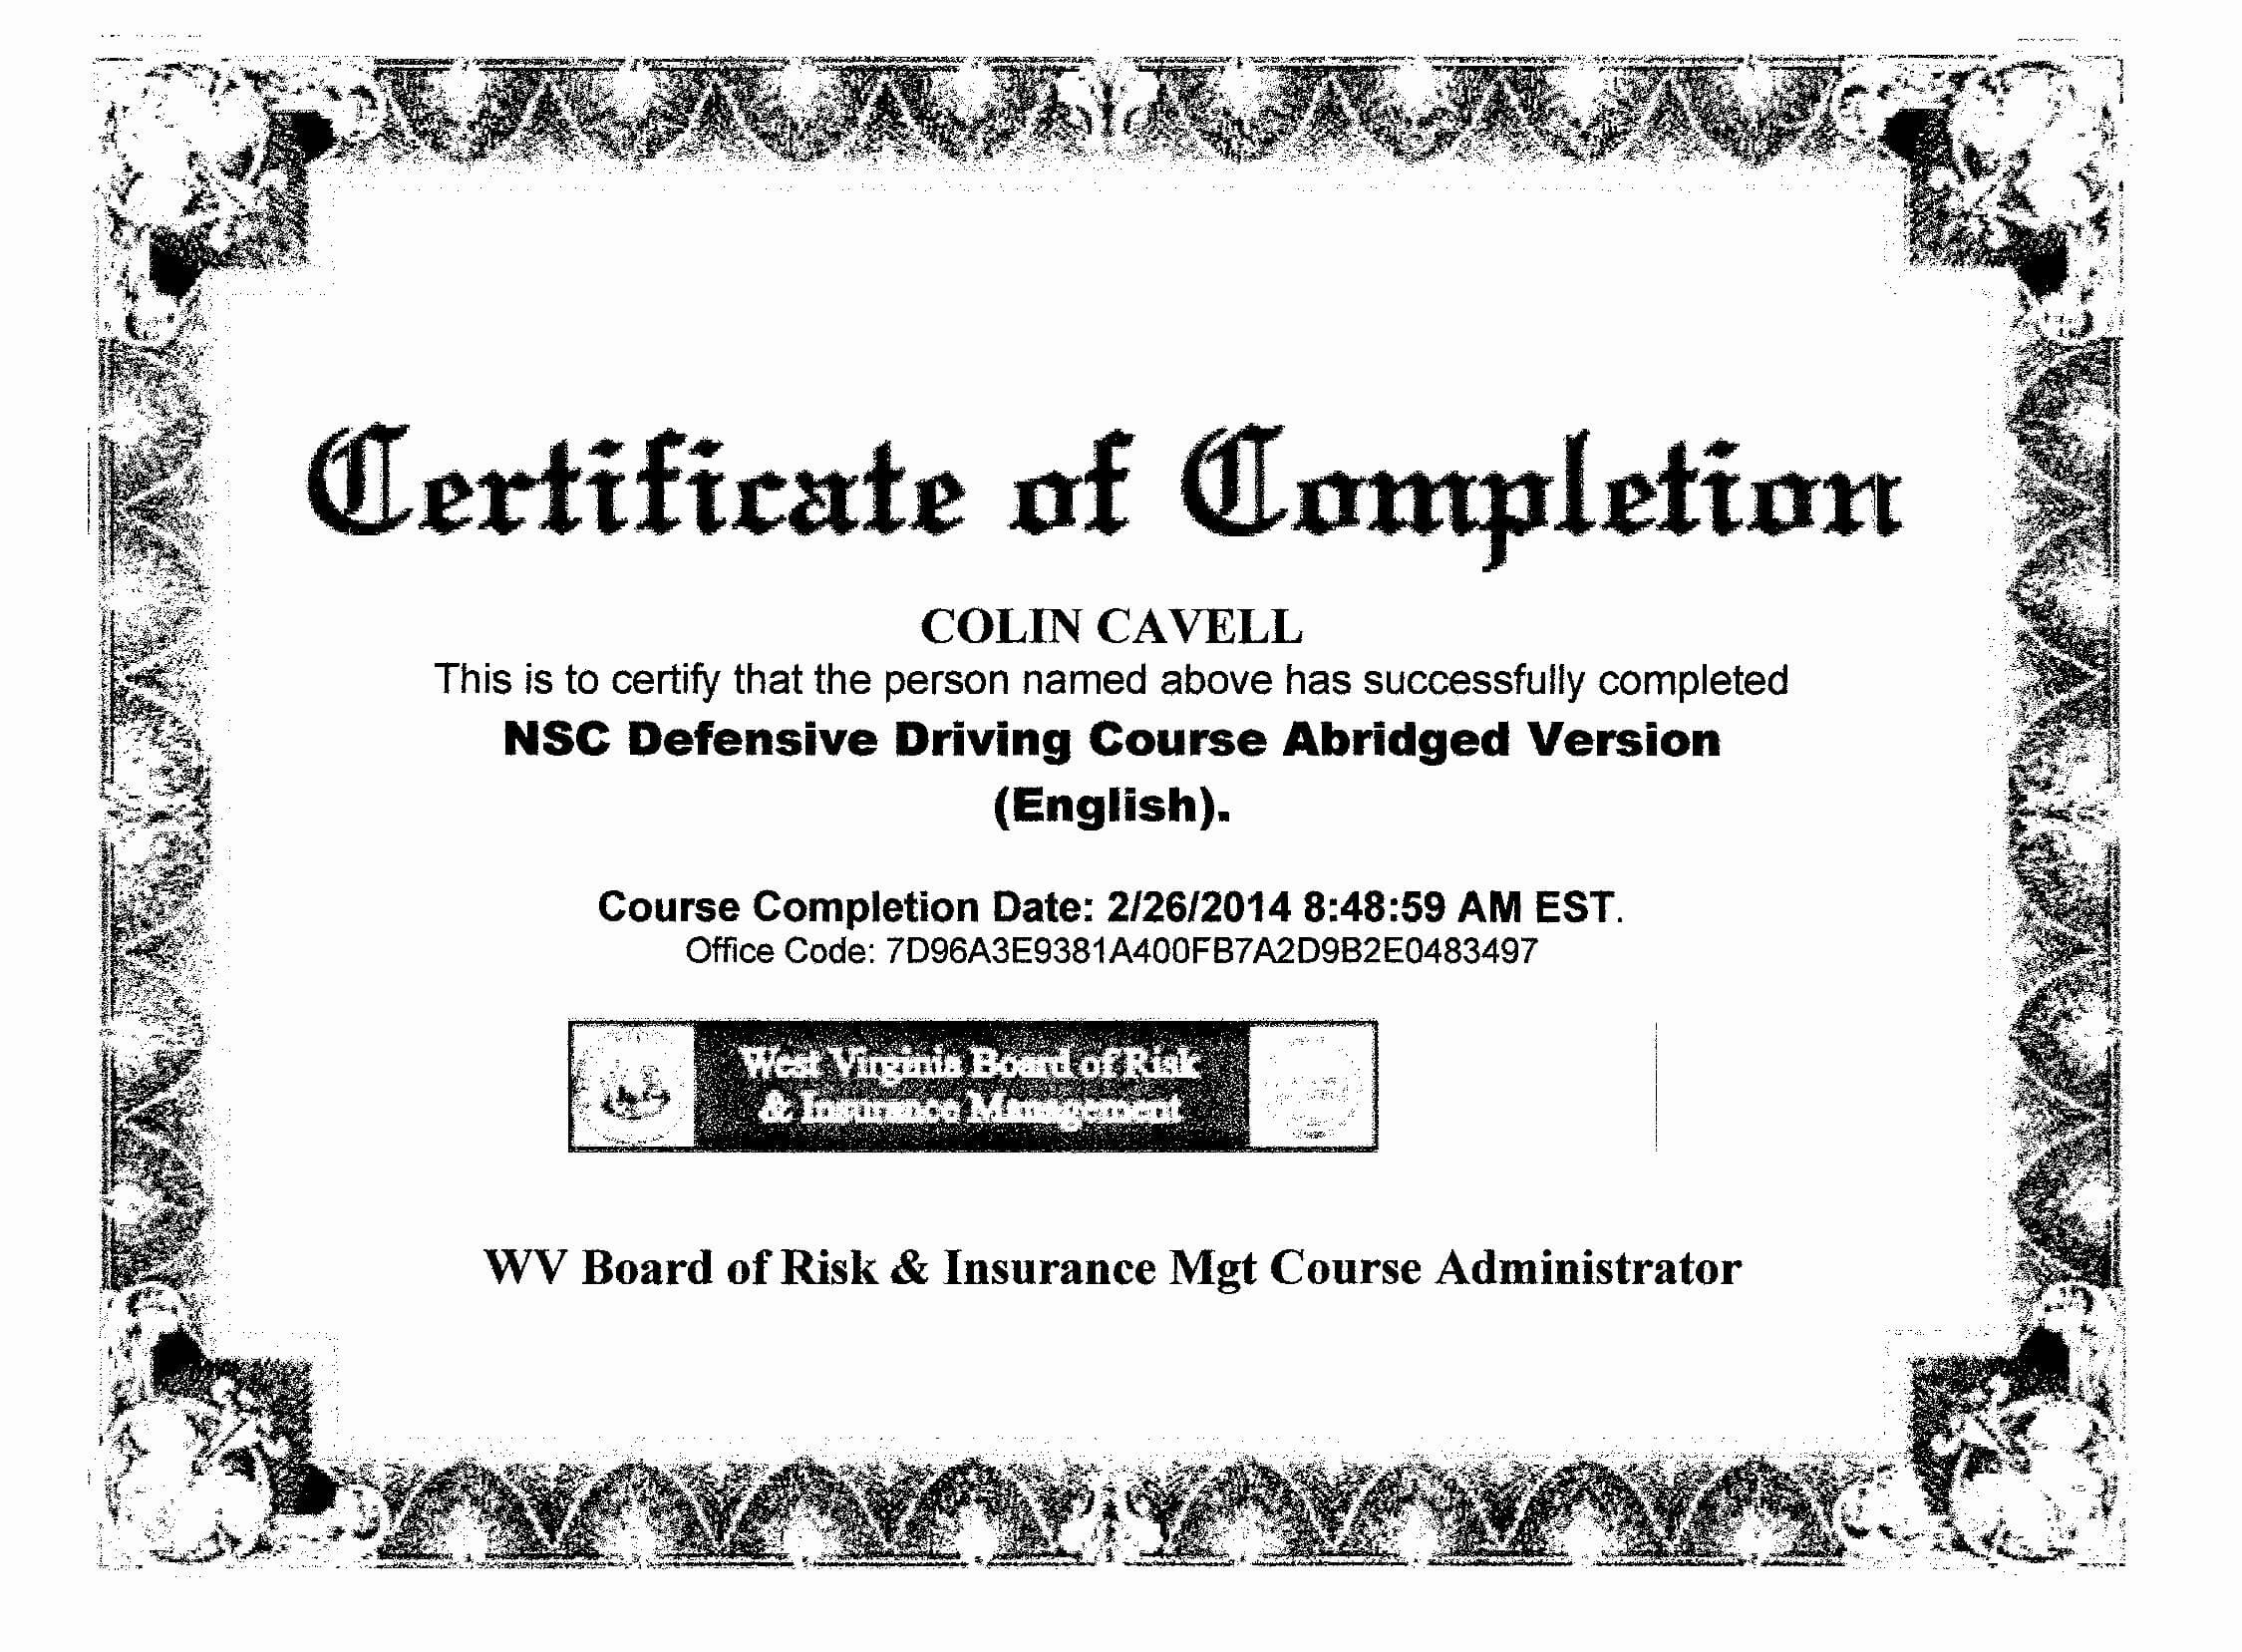 30 Defensive Driving Certificate Template | Pryncepality For Safe Driving Certificate Template